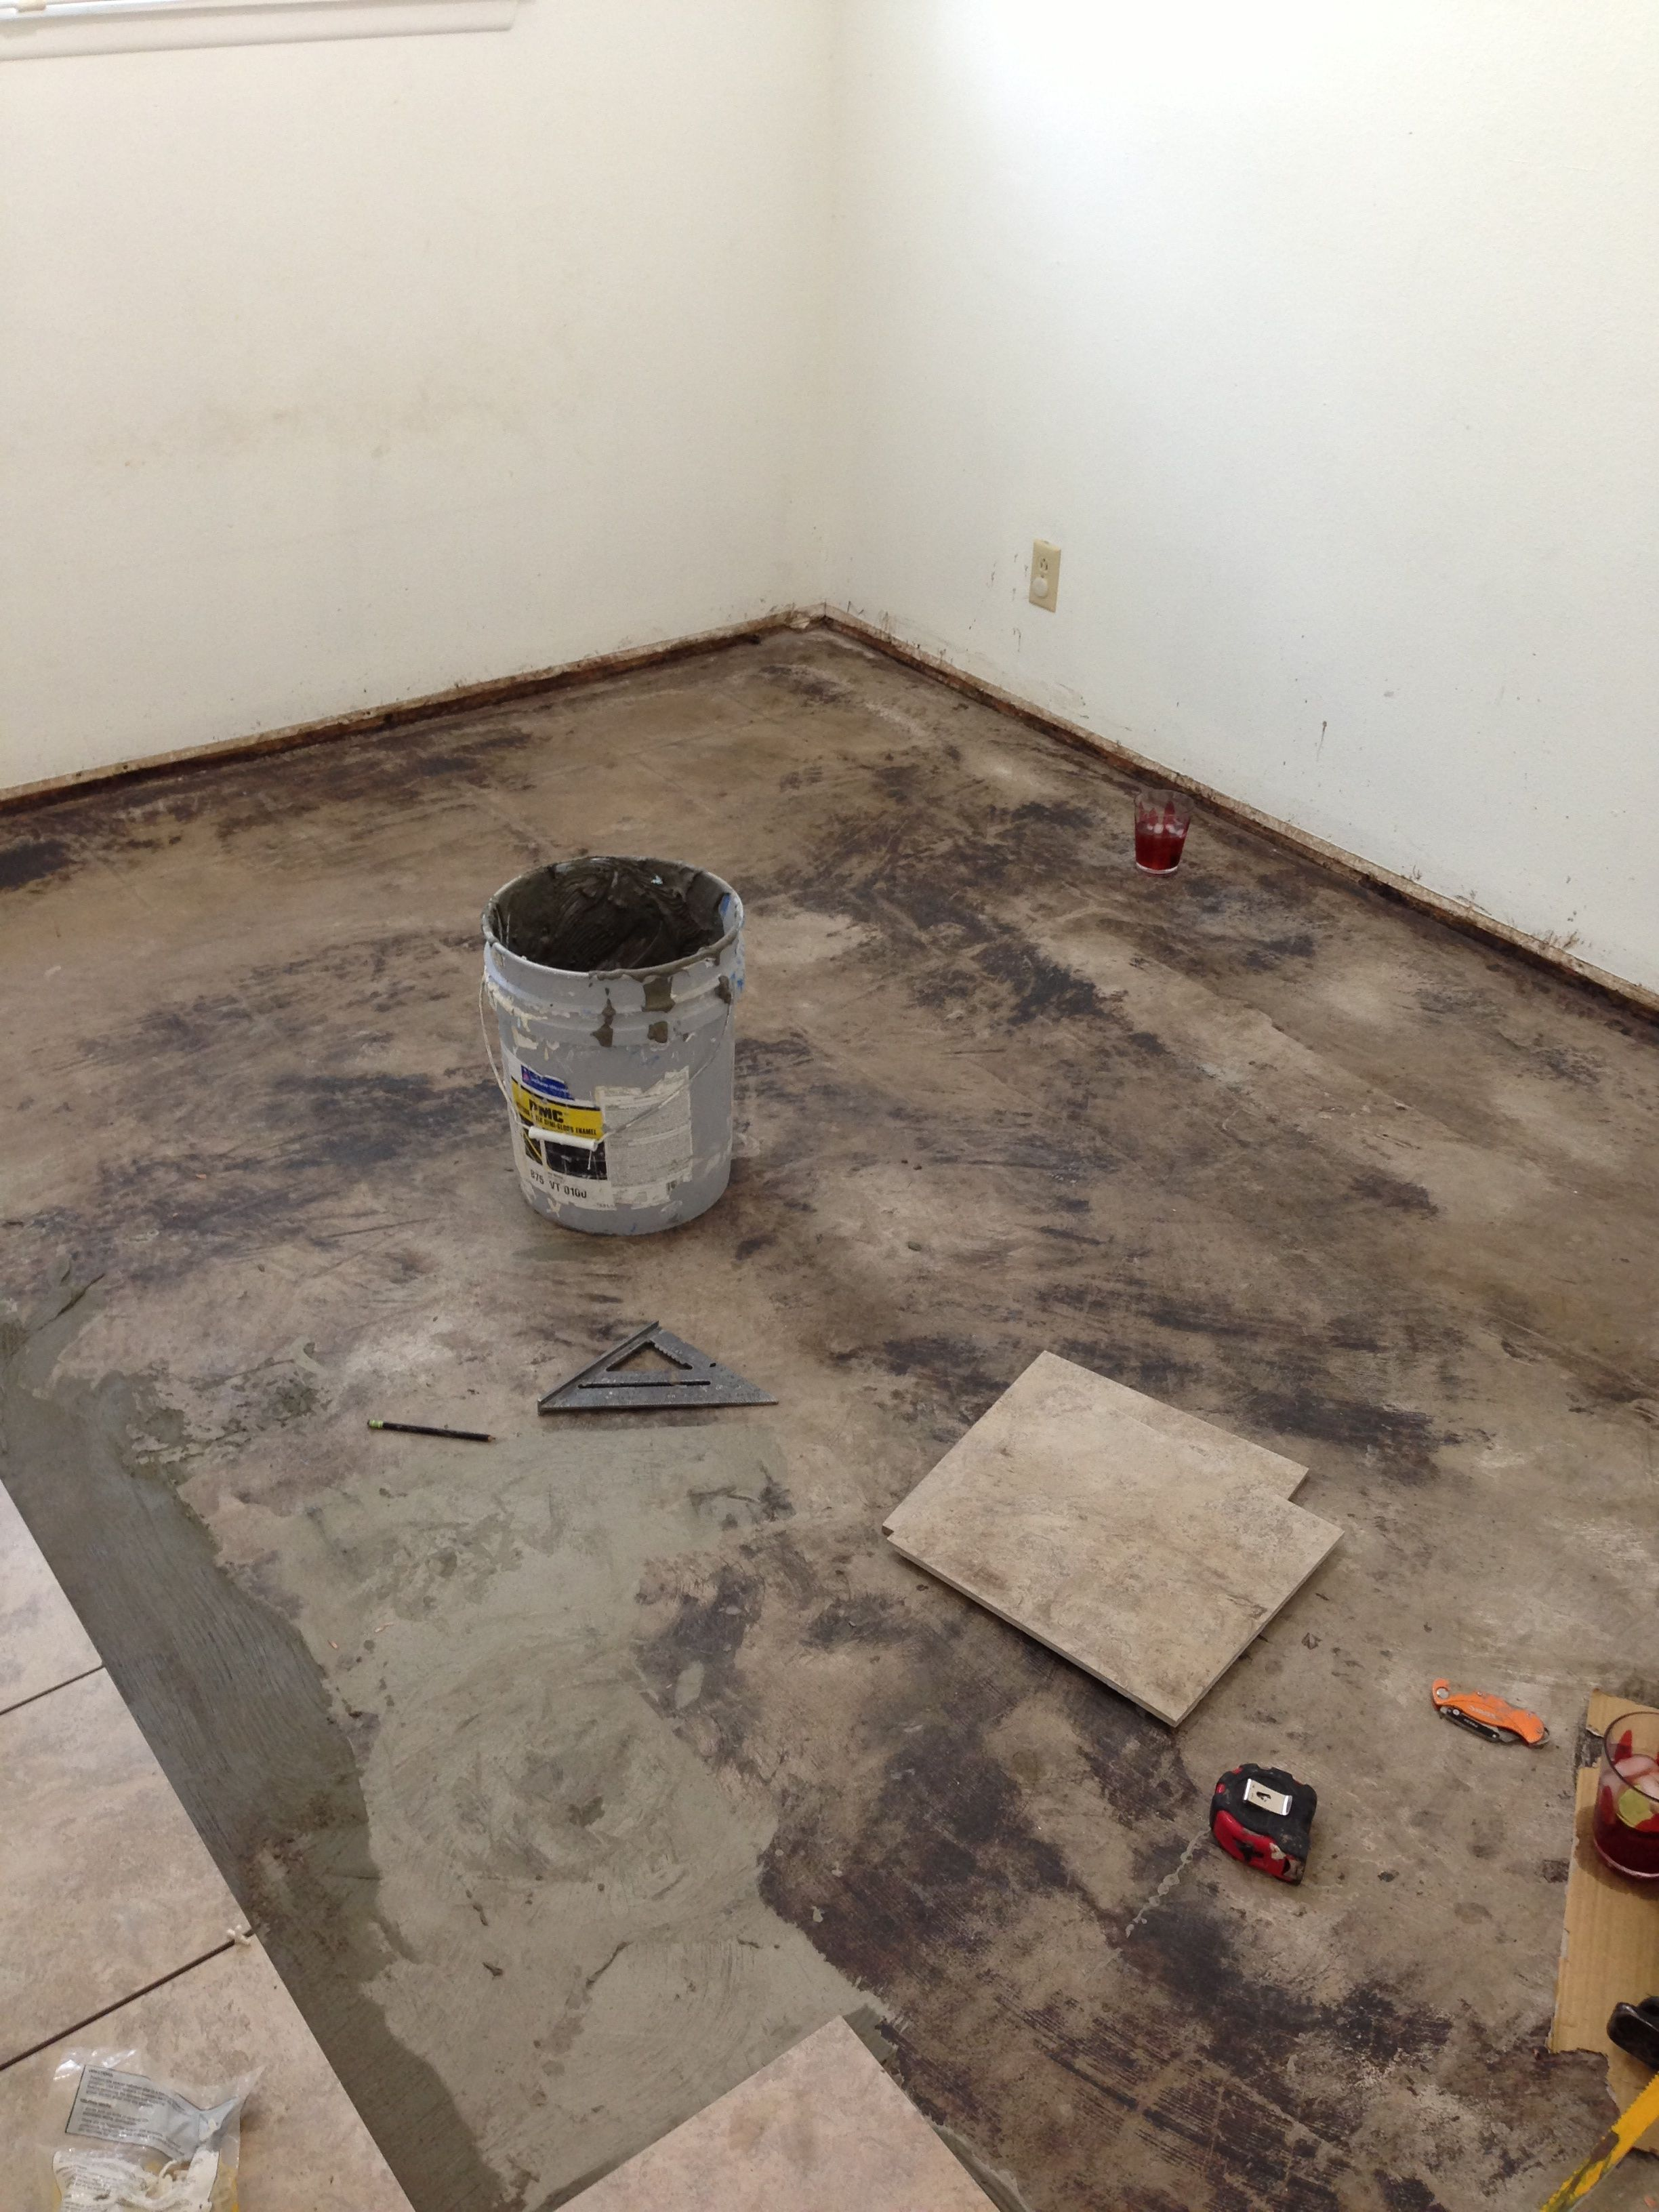 Going to be an easy day at ASG with only 150 sf of porcelain tile